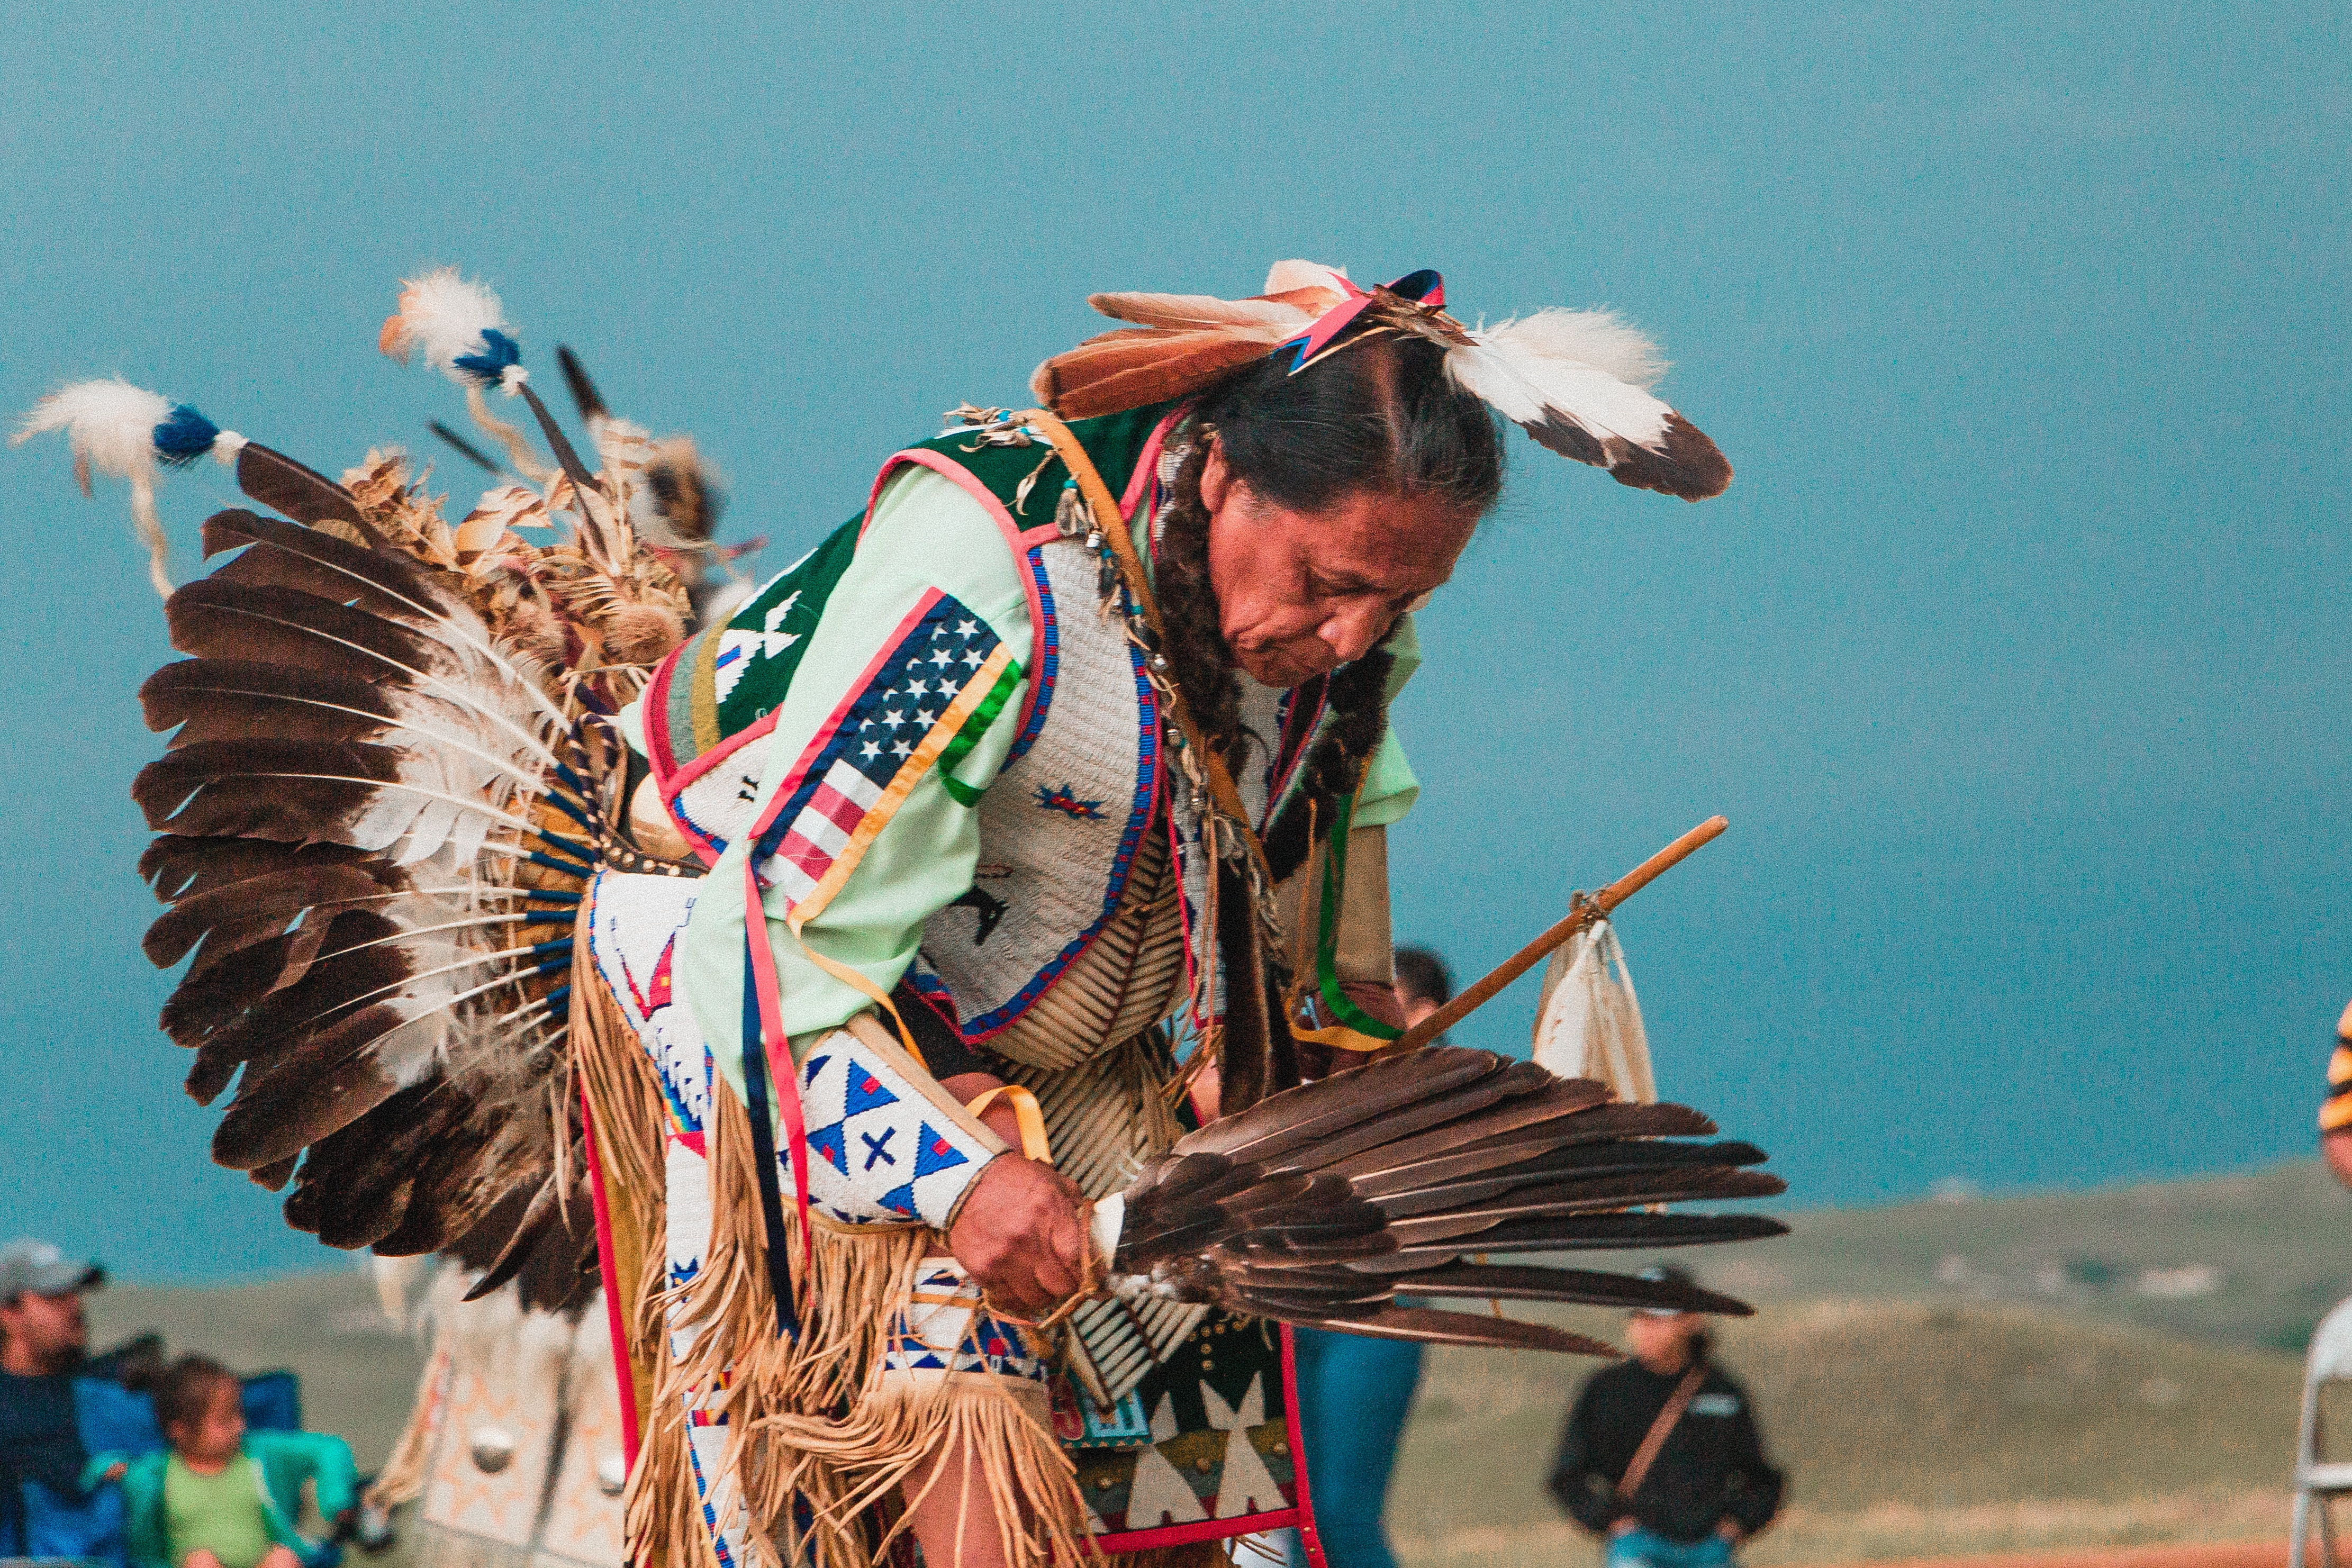 An indigenous American of the Lakota tribe